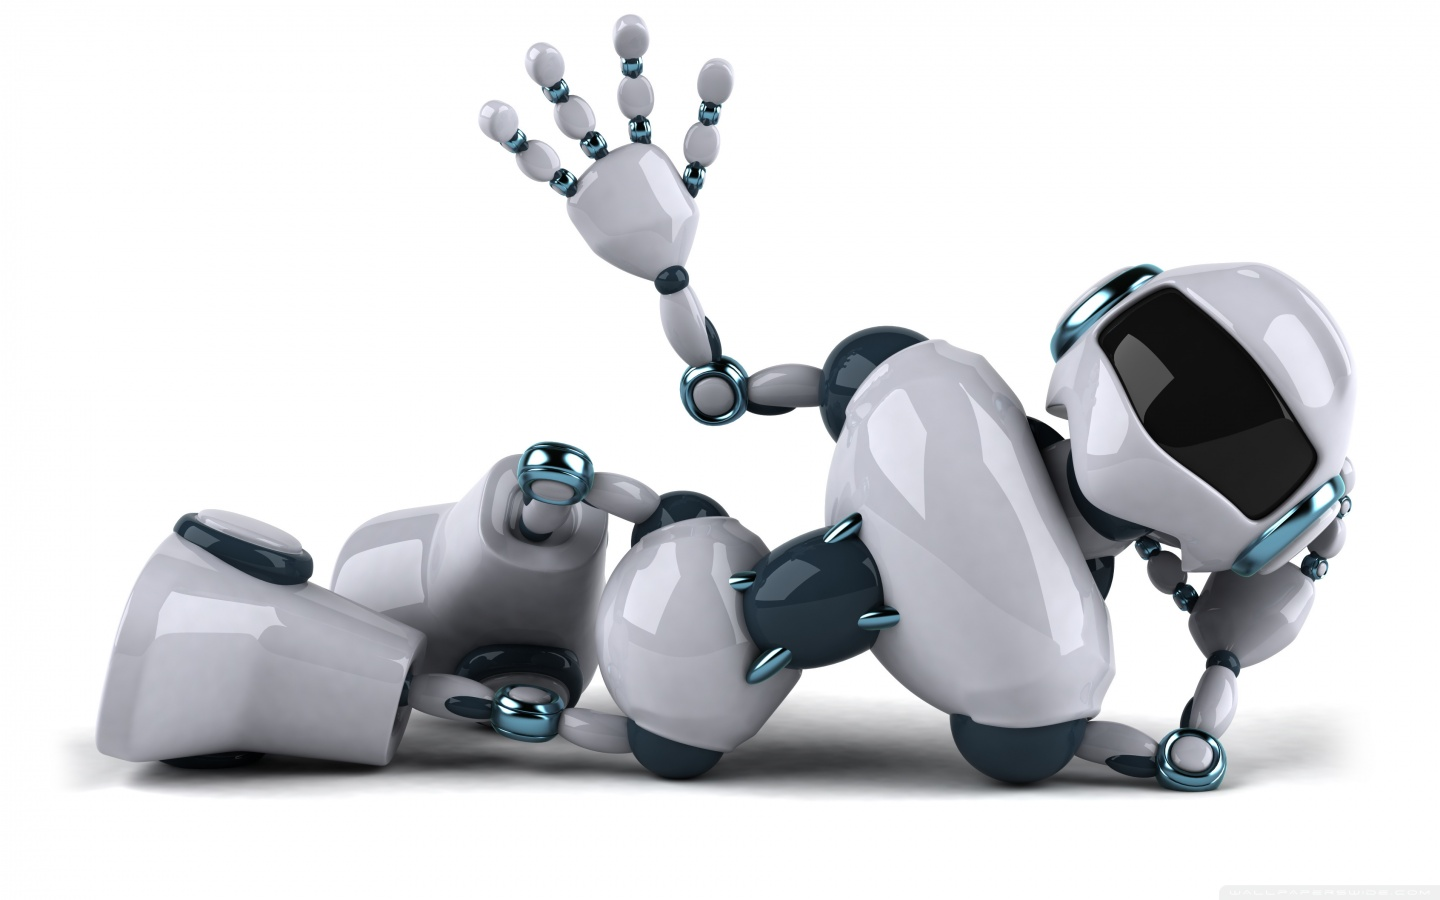 robots_of_the